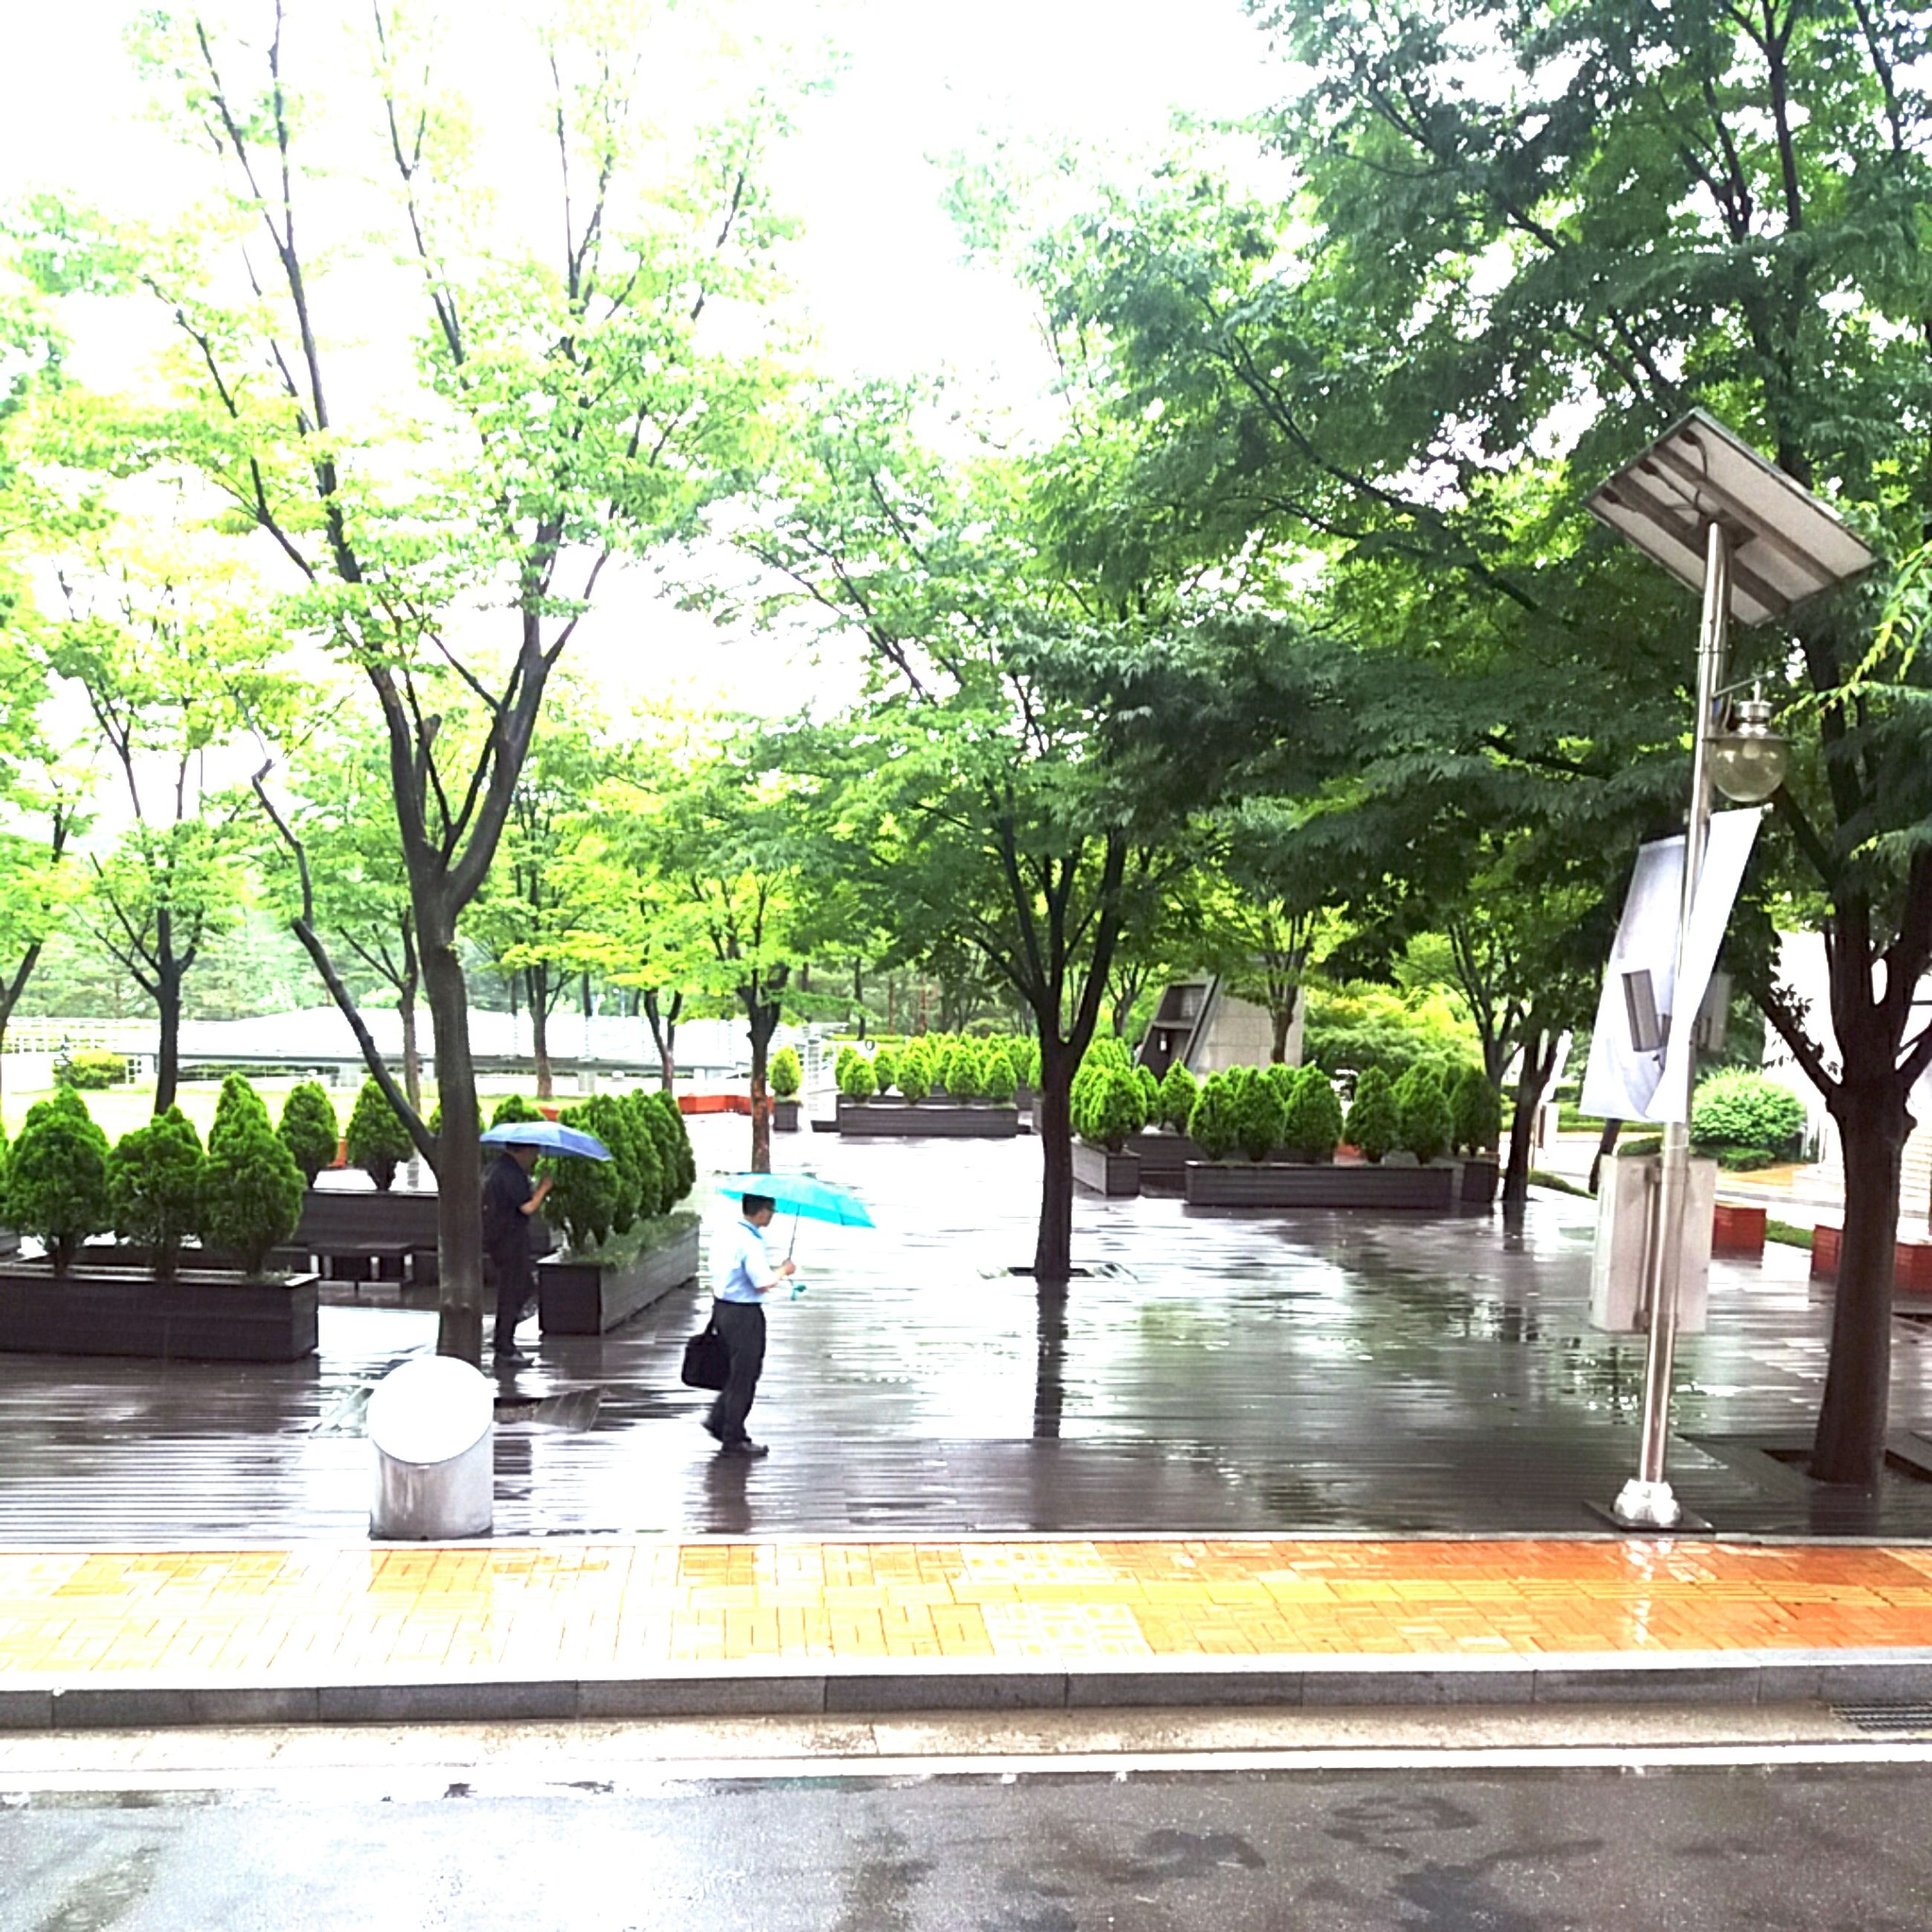 tree, water, growth, park - man made space, nature, reflection, street light, incidental people, sunlight, yellow, street, outdoors, day, branch, tree trunk, railing, bench, city, sidewalk